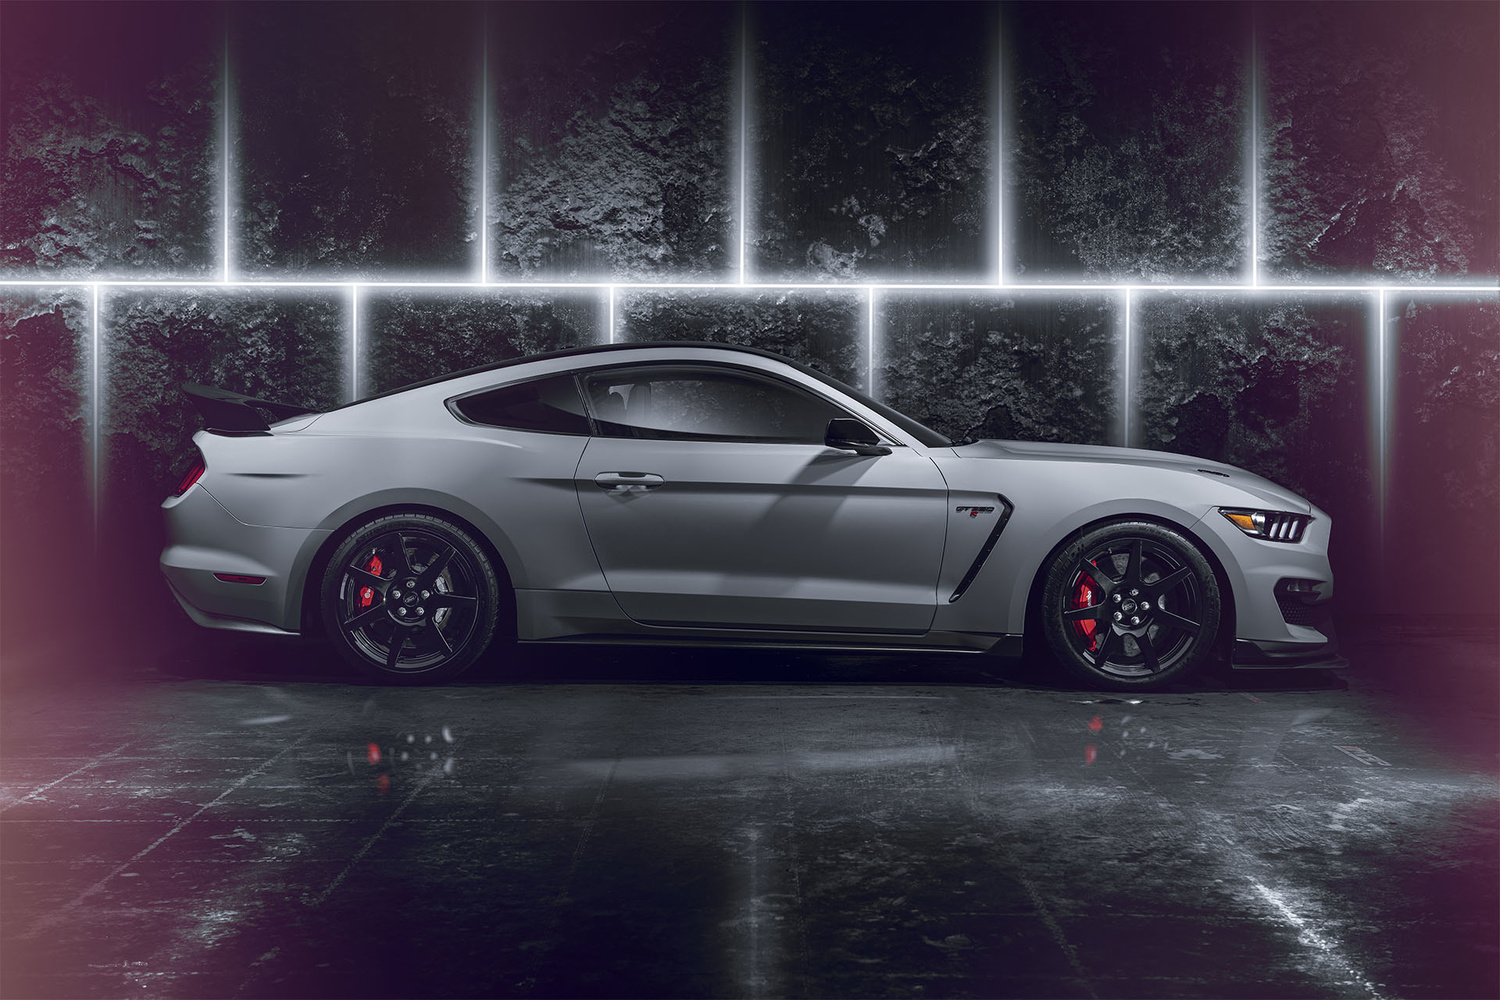 Shelby GT350R by Graham Taylor